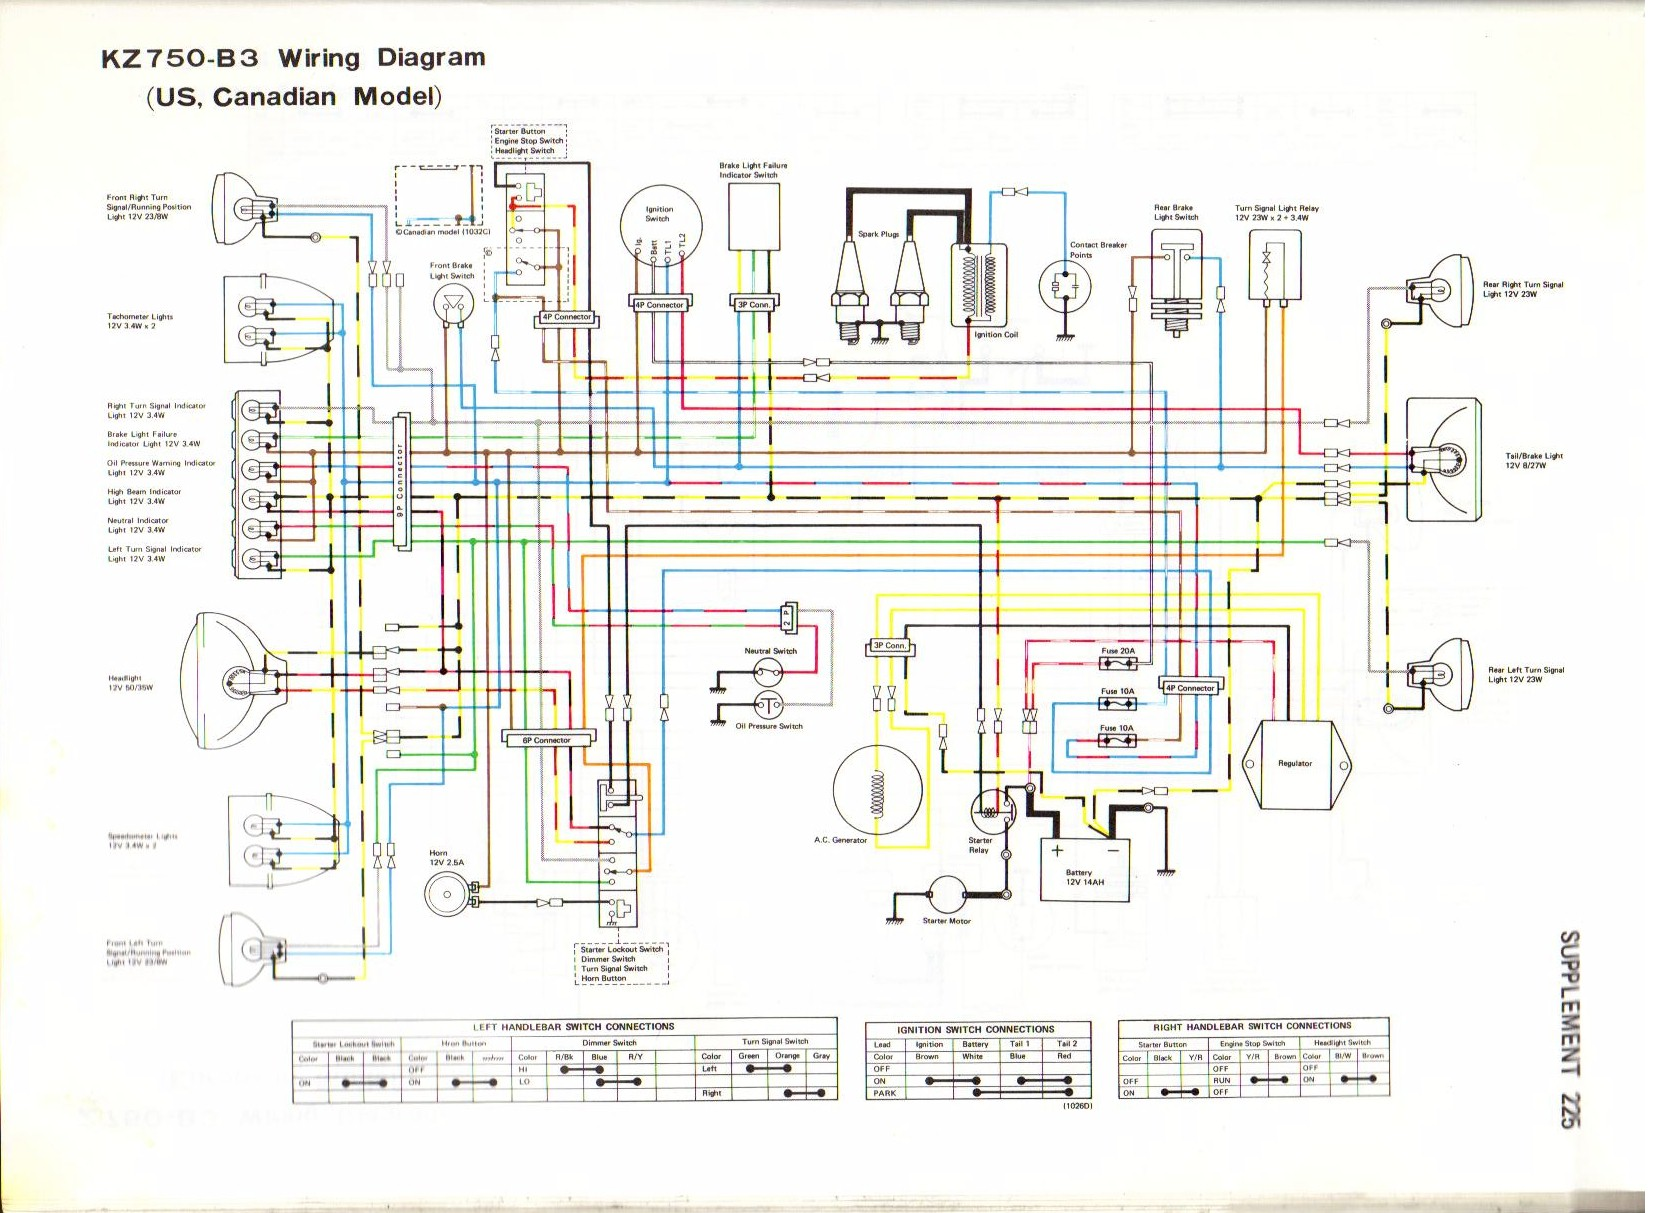 kz750b3 service manuals kz750 twin kz750 twins com 1981 kawasaki 440 ltd wiring diagram at bayanpartner.co